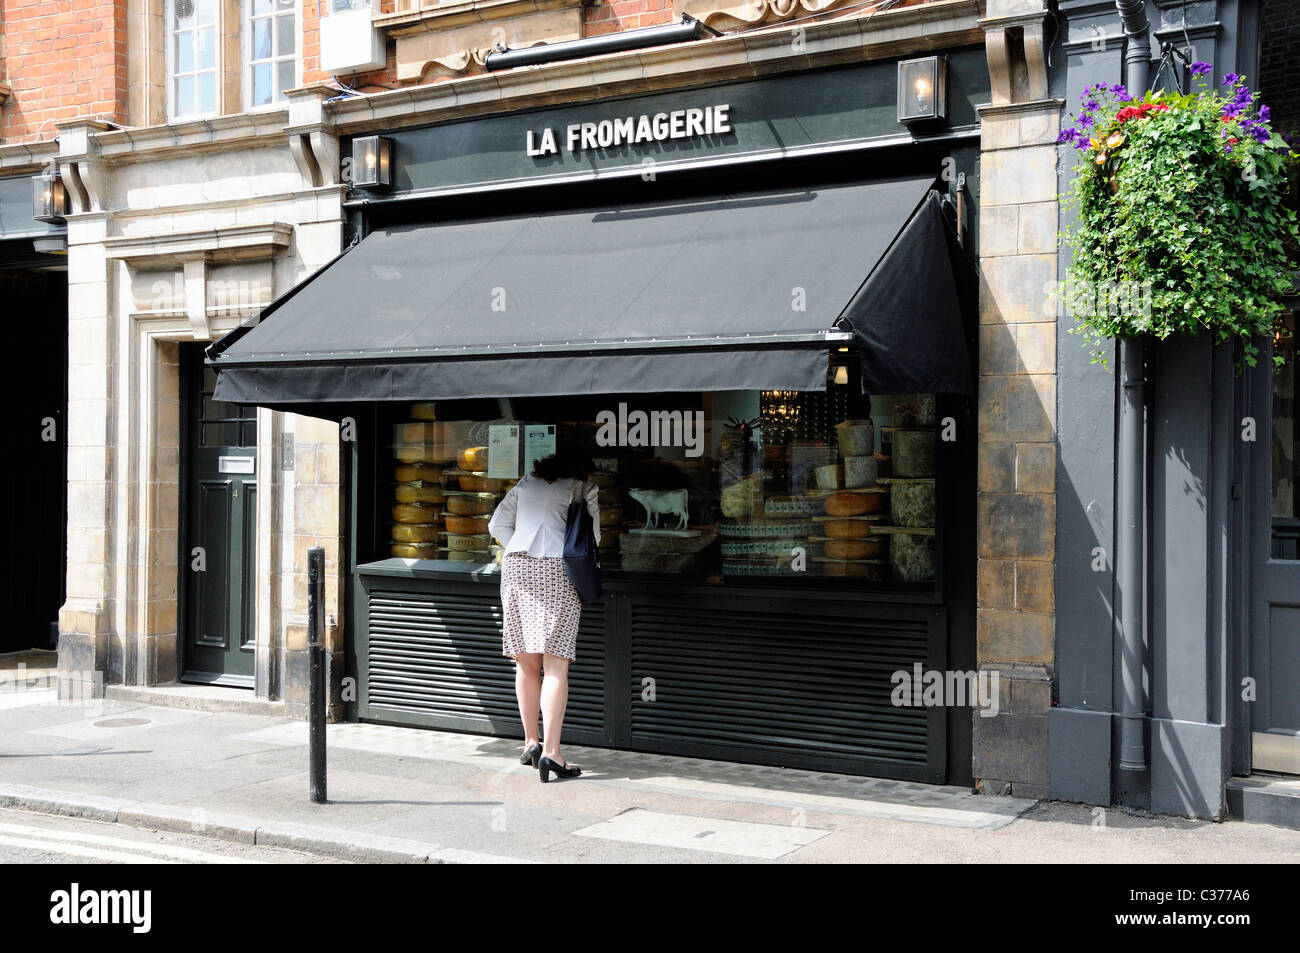 Lady looking into La Fromagerie cheese shop Moxon Street off Marylebone High Street London England UK - Stock Image